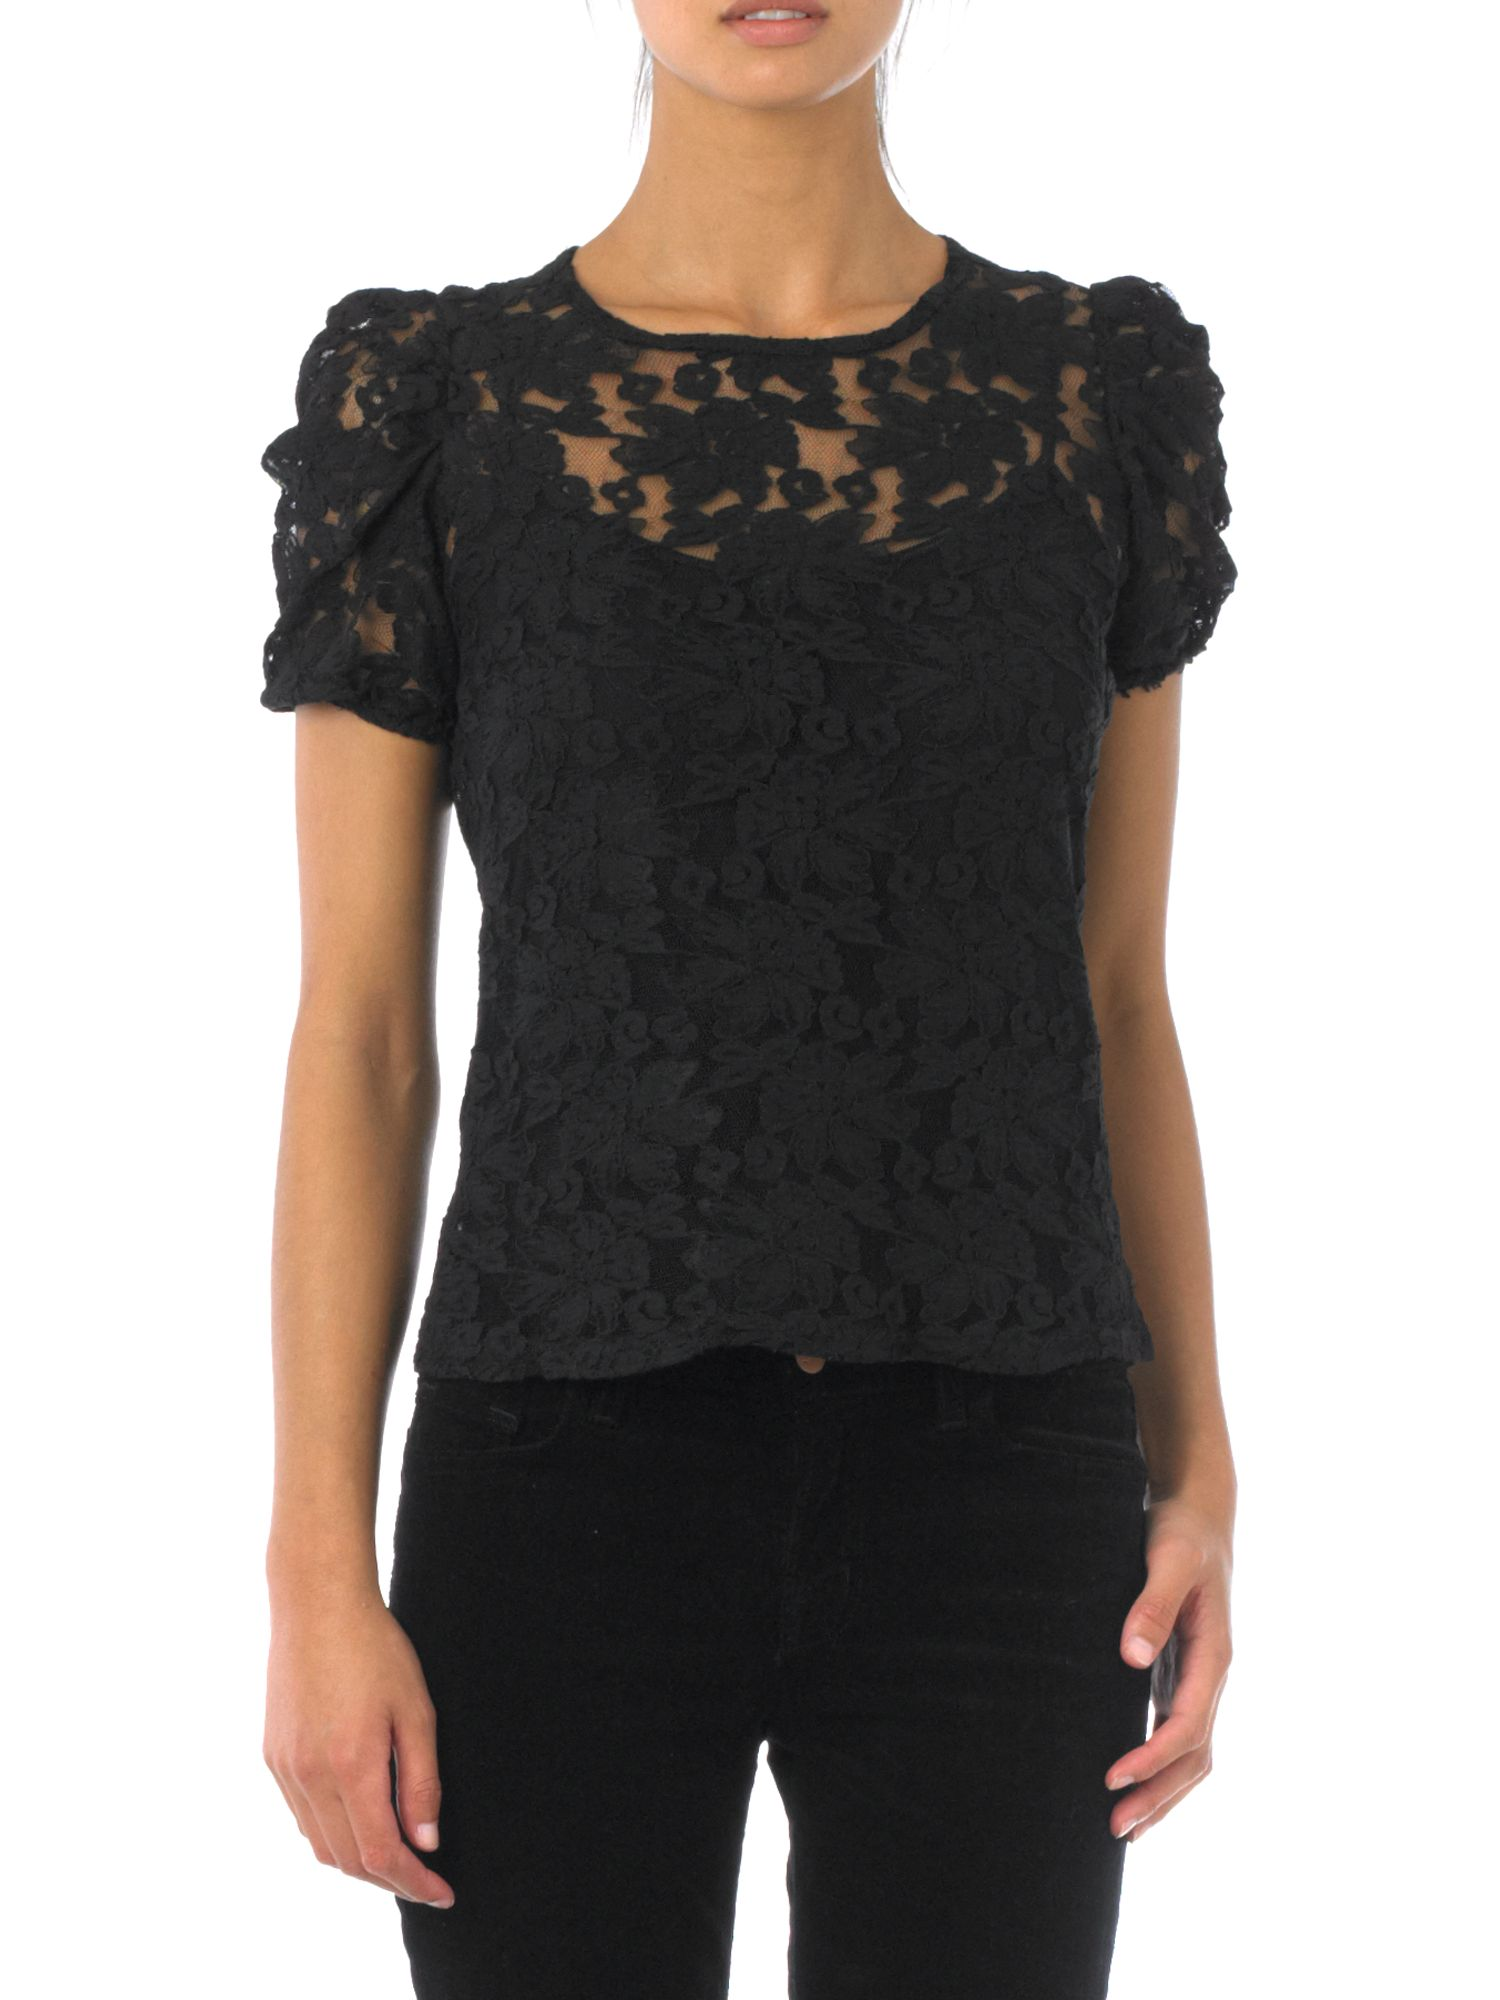 Therapy Womens Therapy All over lace blouse, Black product image